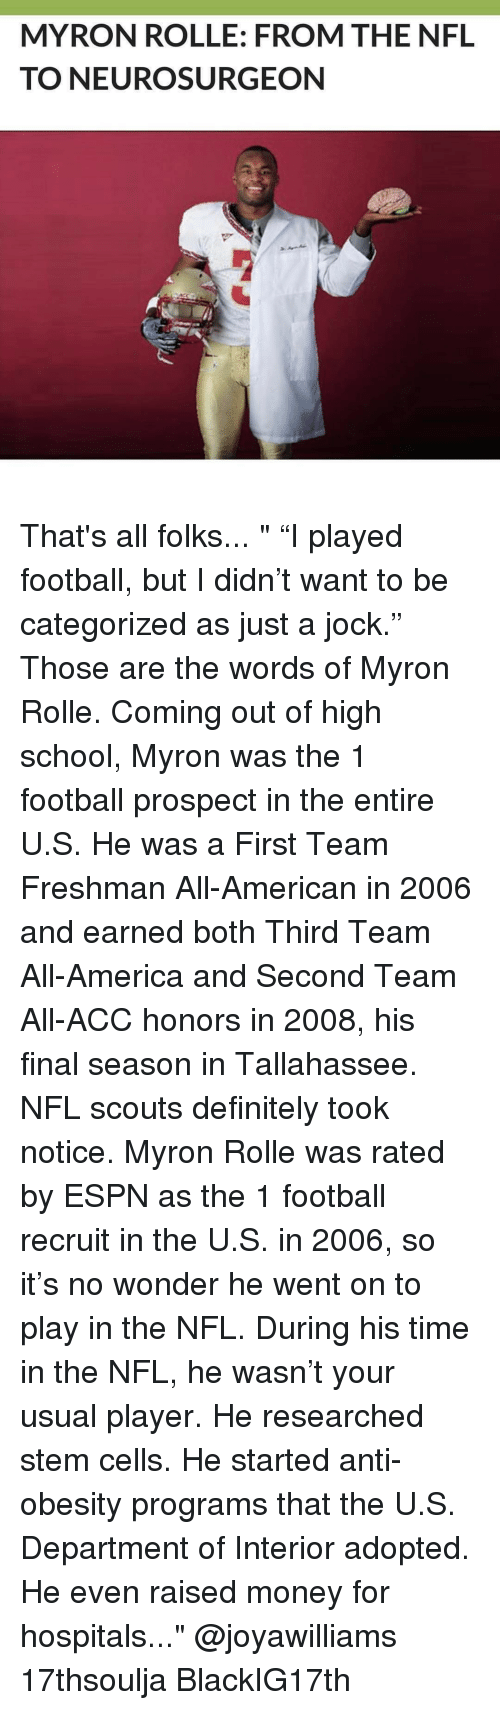 "Definitally: MYRON ROLLE: FROM THE NFL  TO NEURO SURGEON That's all folks... "" ""I played football, but I didn't want to be categorized as just a jock."" Those are the words of Myron Rolle. Coming out of high school, Myron was the 1 football prospect in the entire U.S. He was a First Team Freshman All-American in 2006 and earned both Third Team All-America and Second Team All-ACC honors in 2008, his final season in Tallahassee. NFL scouts definitely took notice. Myron Rolle was rated by ESPN as the 1 football recruit in the U.S. in 2006, so it's no wonder he went on to play in the NFL. During his time in the NFL, he wasn't your usual player. He researched stem cells. He started anti-obesity programs that the U.S. Department of Interior adopted. He even raised money for hospitals..."" @joyawilliams 17thsoulja BlackIG17th"